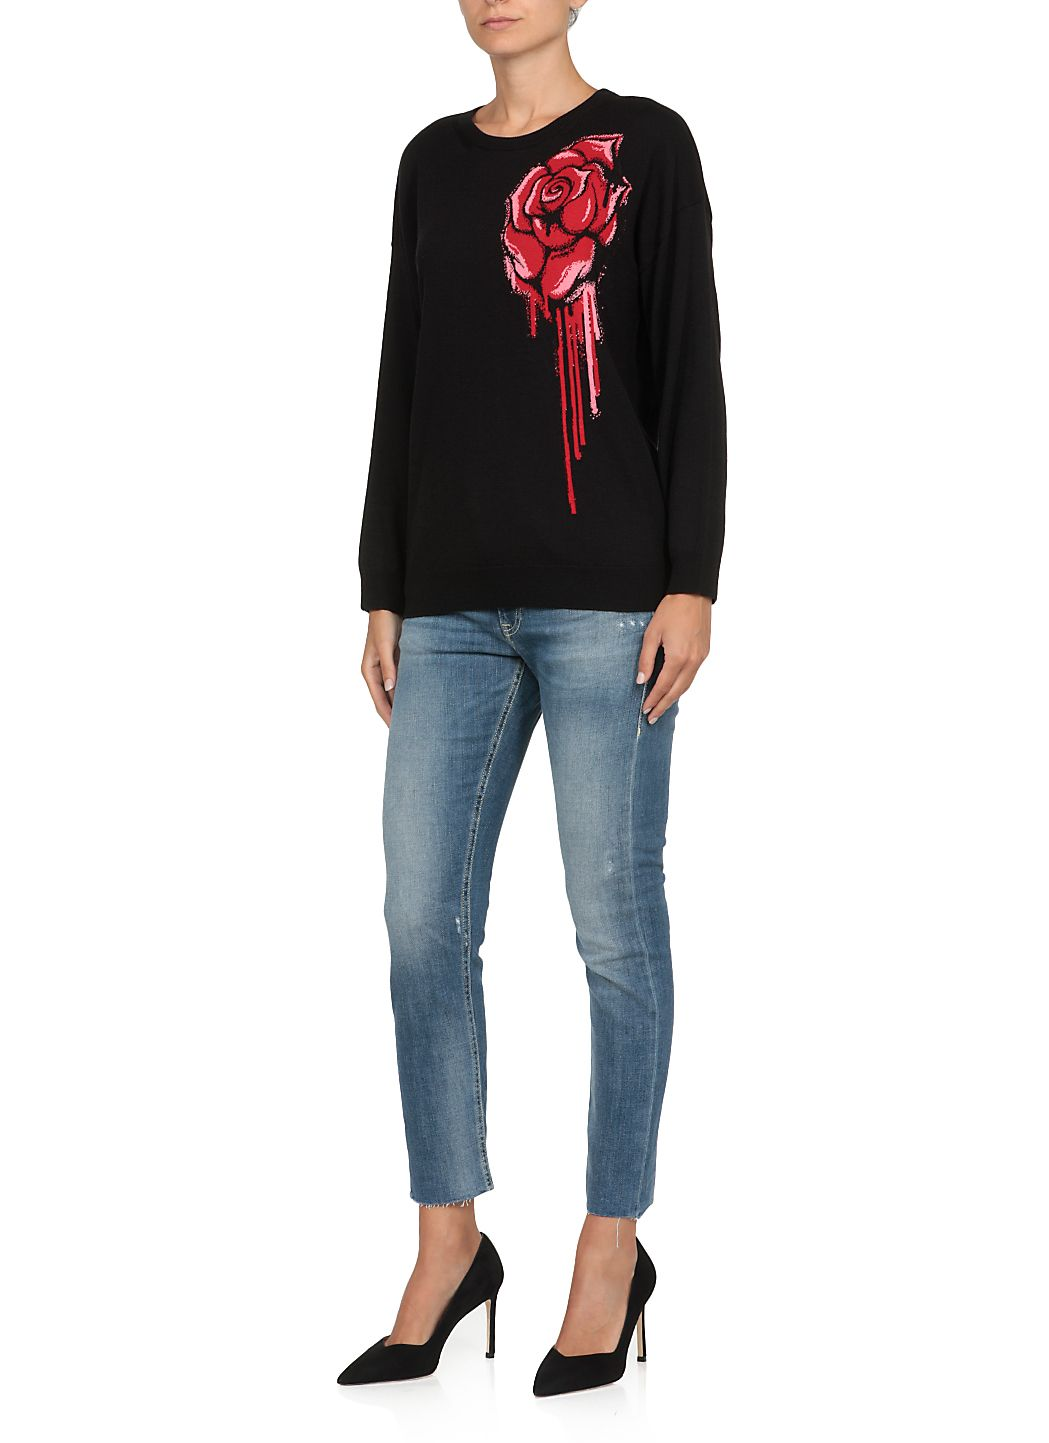 Sweater with Embroidered Rose